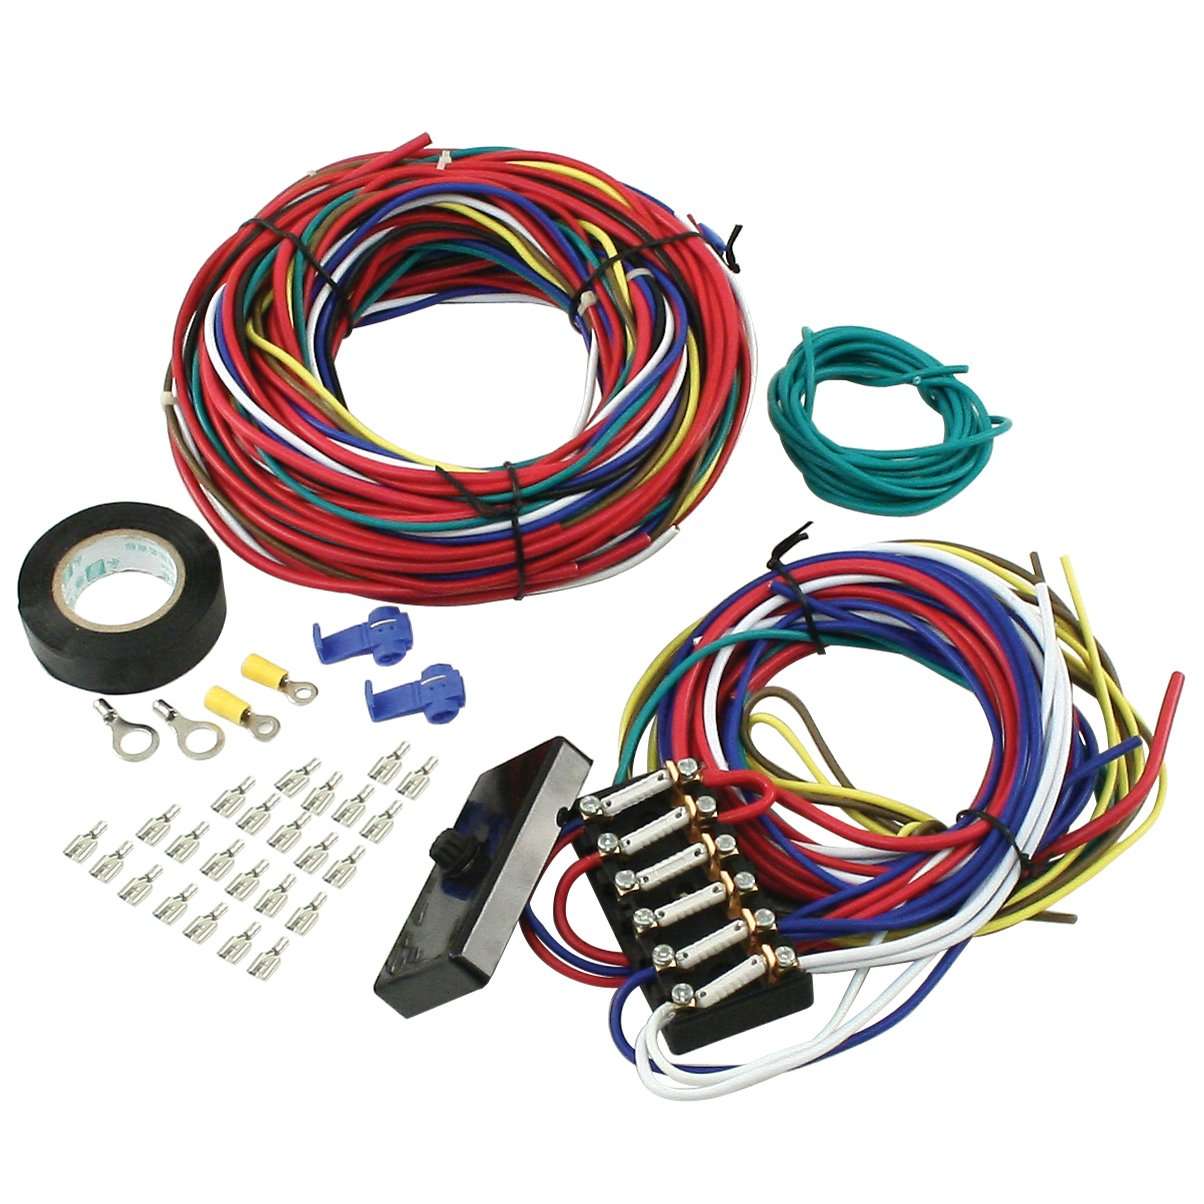 712Fyt3MSiL._SL1204_ amazon com empi 00 9466 0 wire loom kit, vw buggy, sand rail VW Wiring Harness Kits at reclaimingppi.co